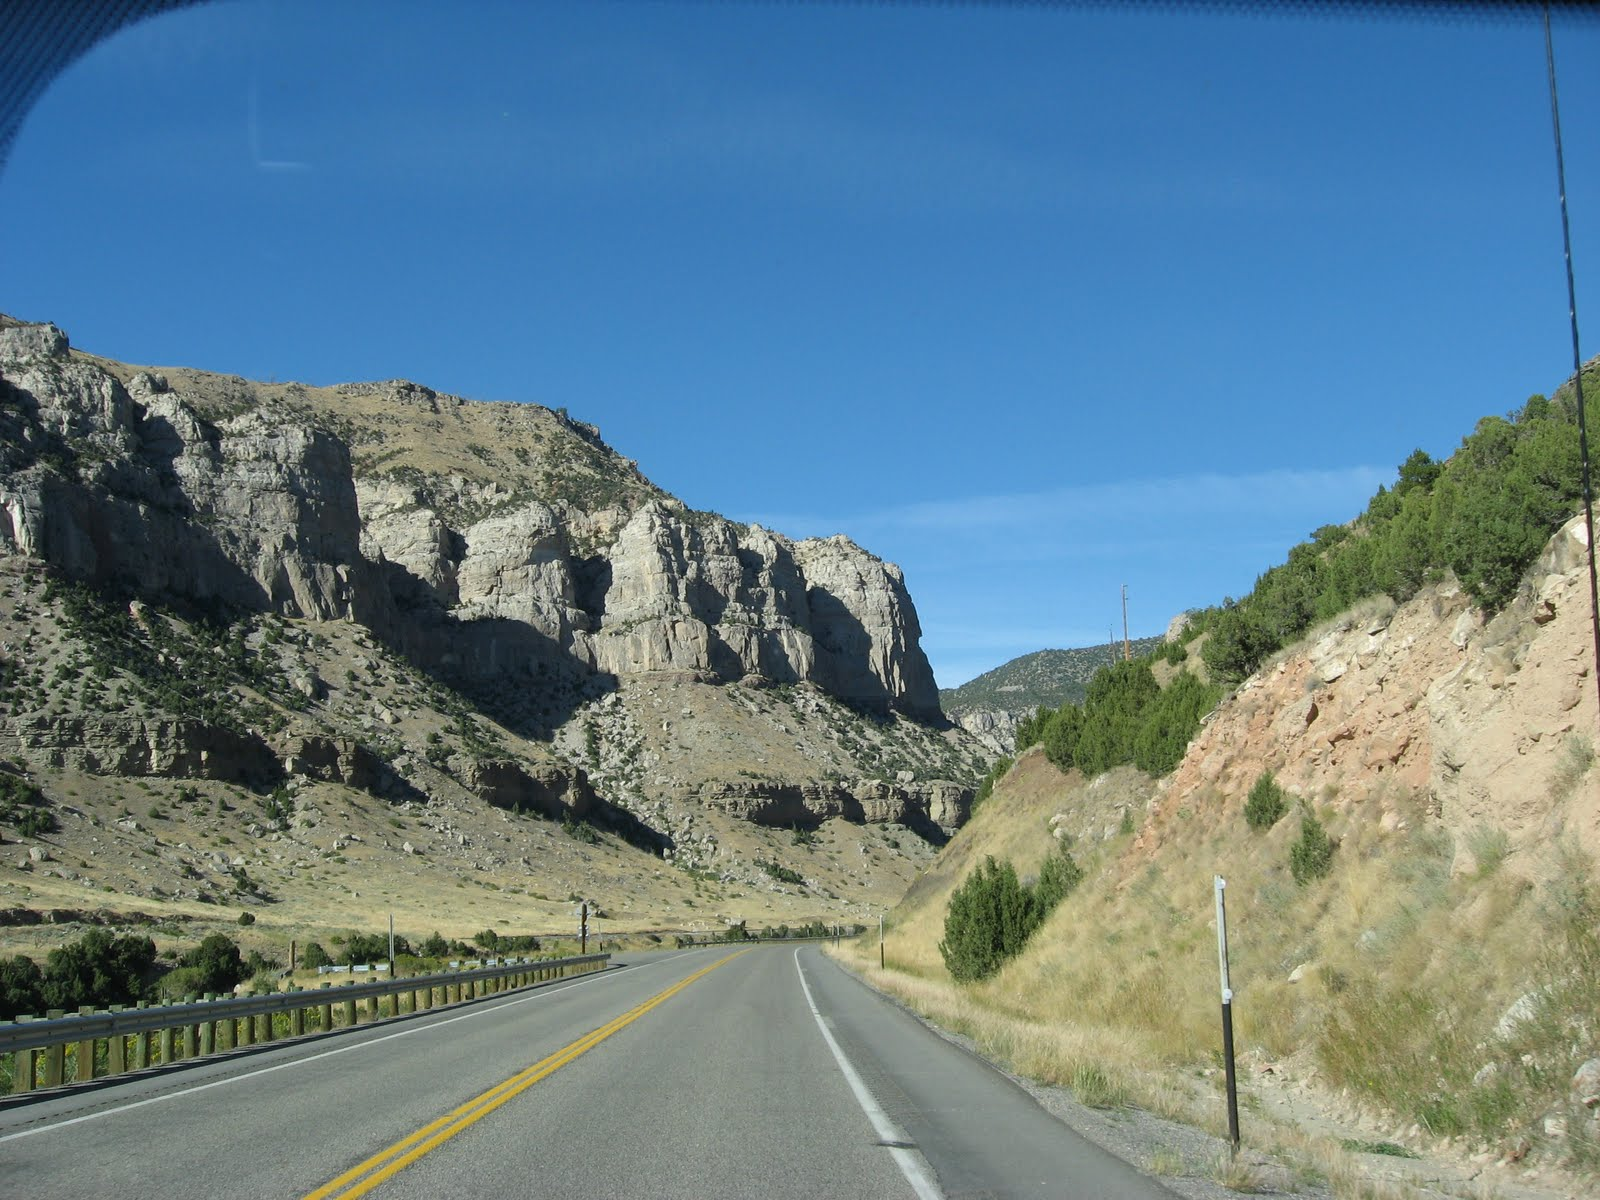 worland black dating site Dating back some 14000 years, the colby site is proof of man using  find this  fossil site east of worland or west of ten sleep to blue bank road, then head   on your way to yellowstone and mount rushmore in the black hills of south  dakota.